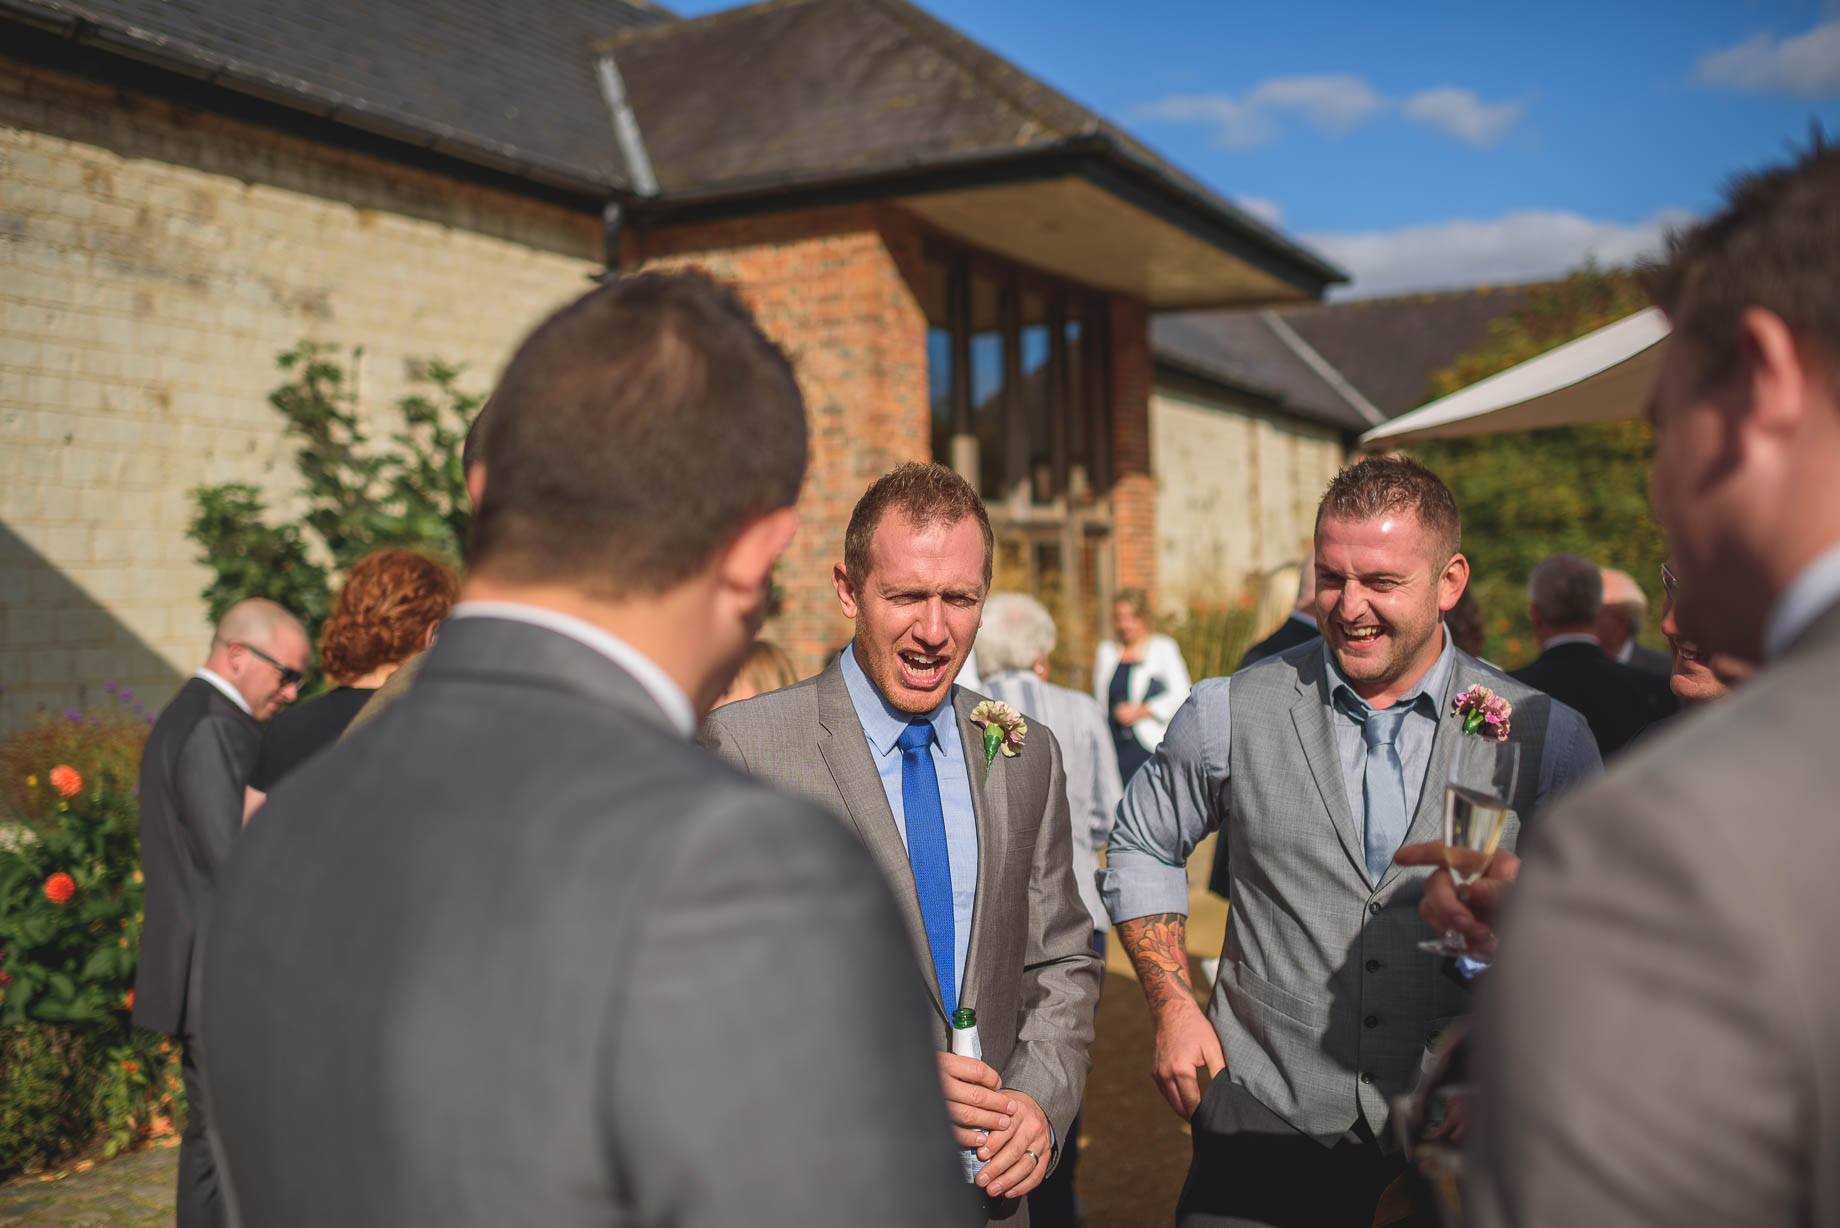 Bury Court Barn wedding photography - Guy Collier - Kate and Russ (101 of 187)